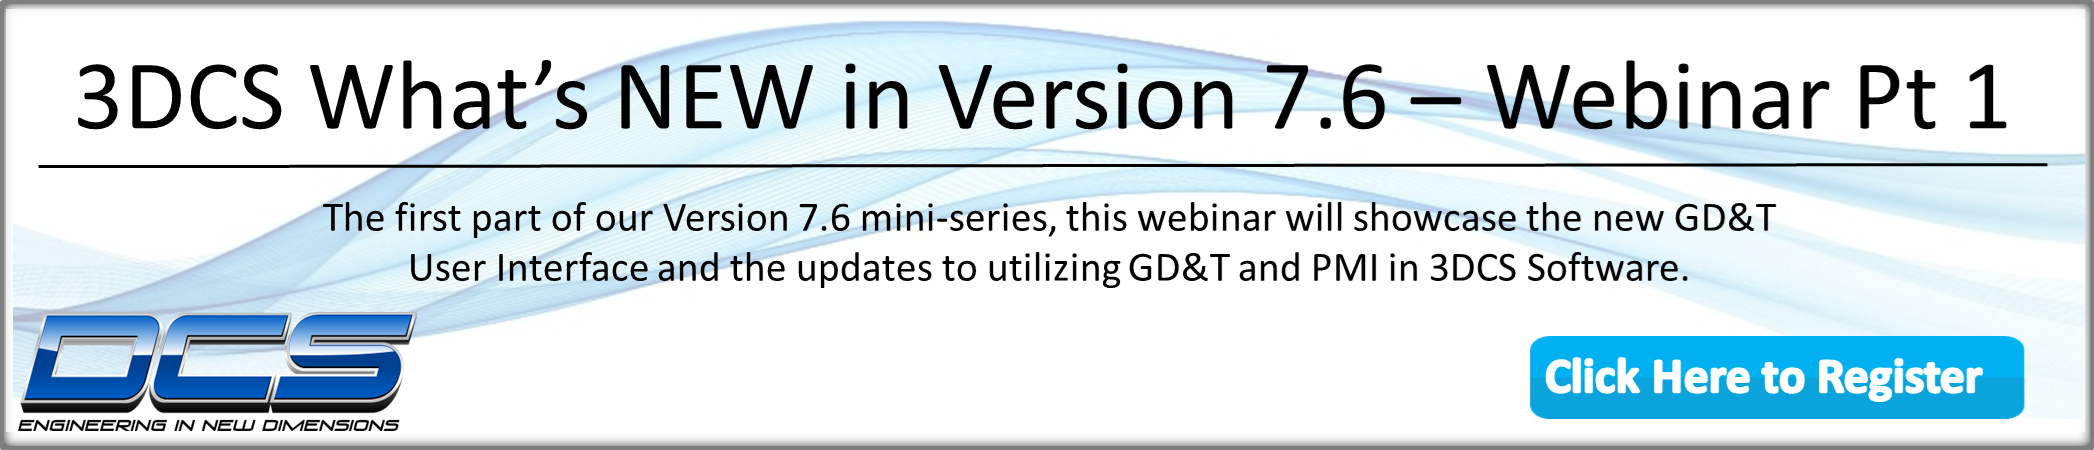 Version 7.6 of 3DCS Now Available Featuring New GD&T Interface